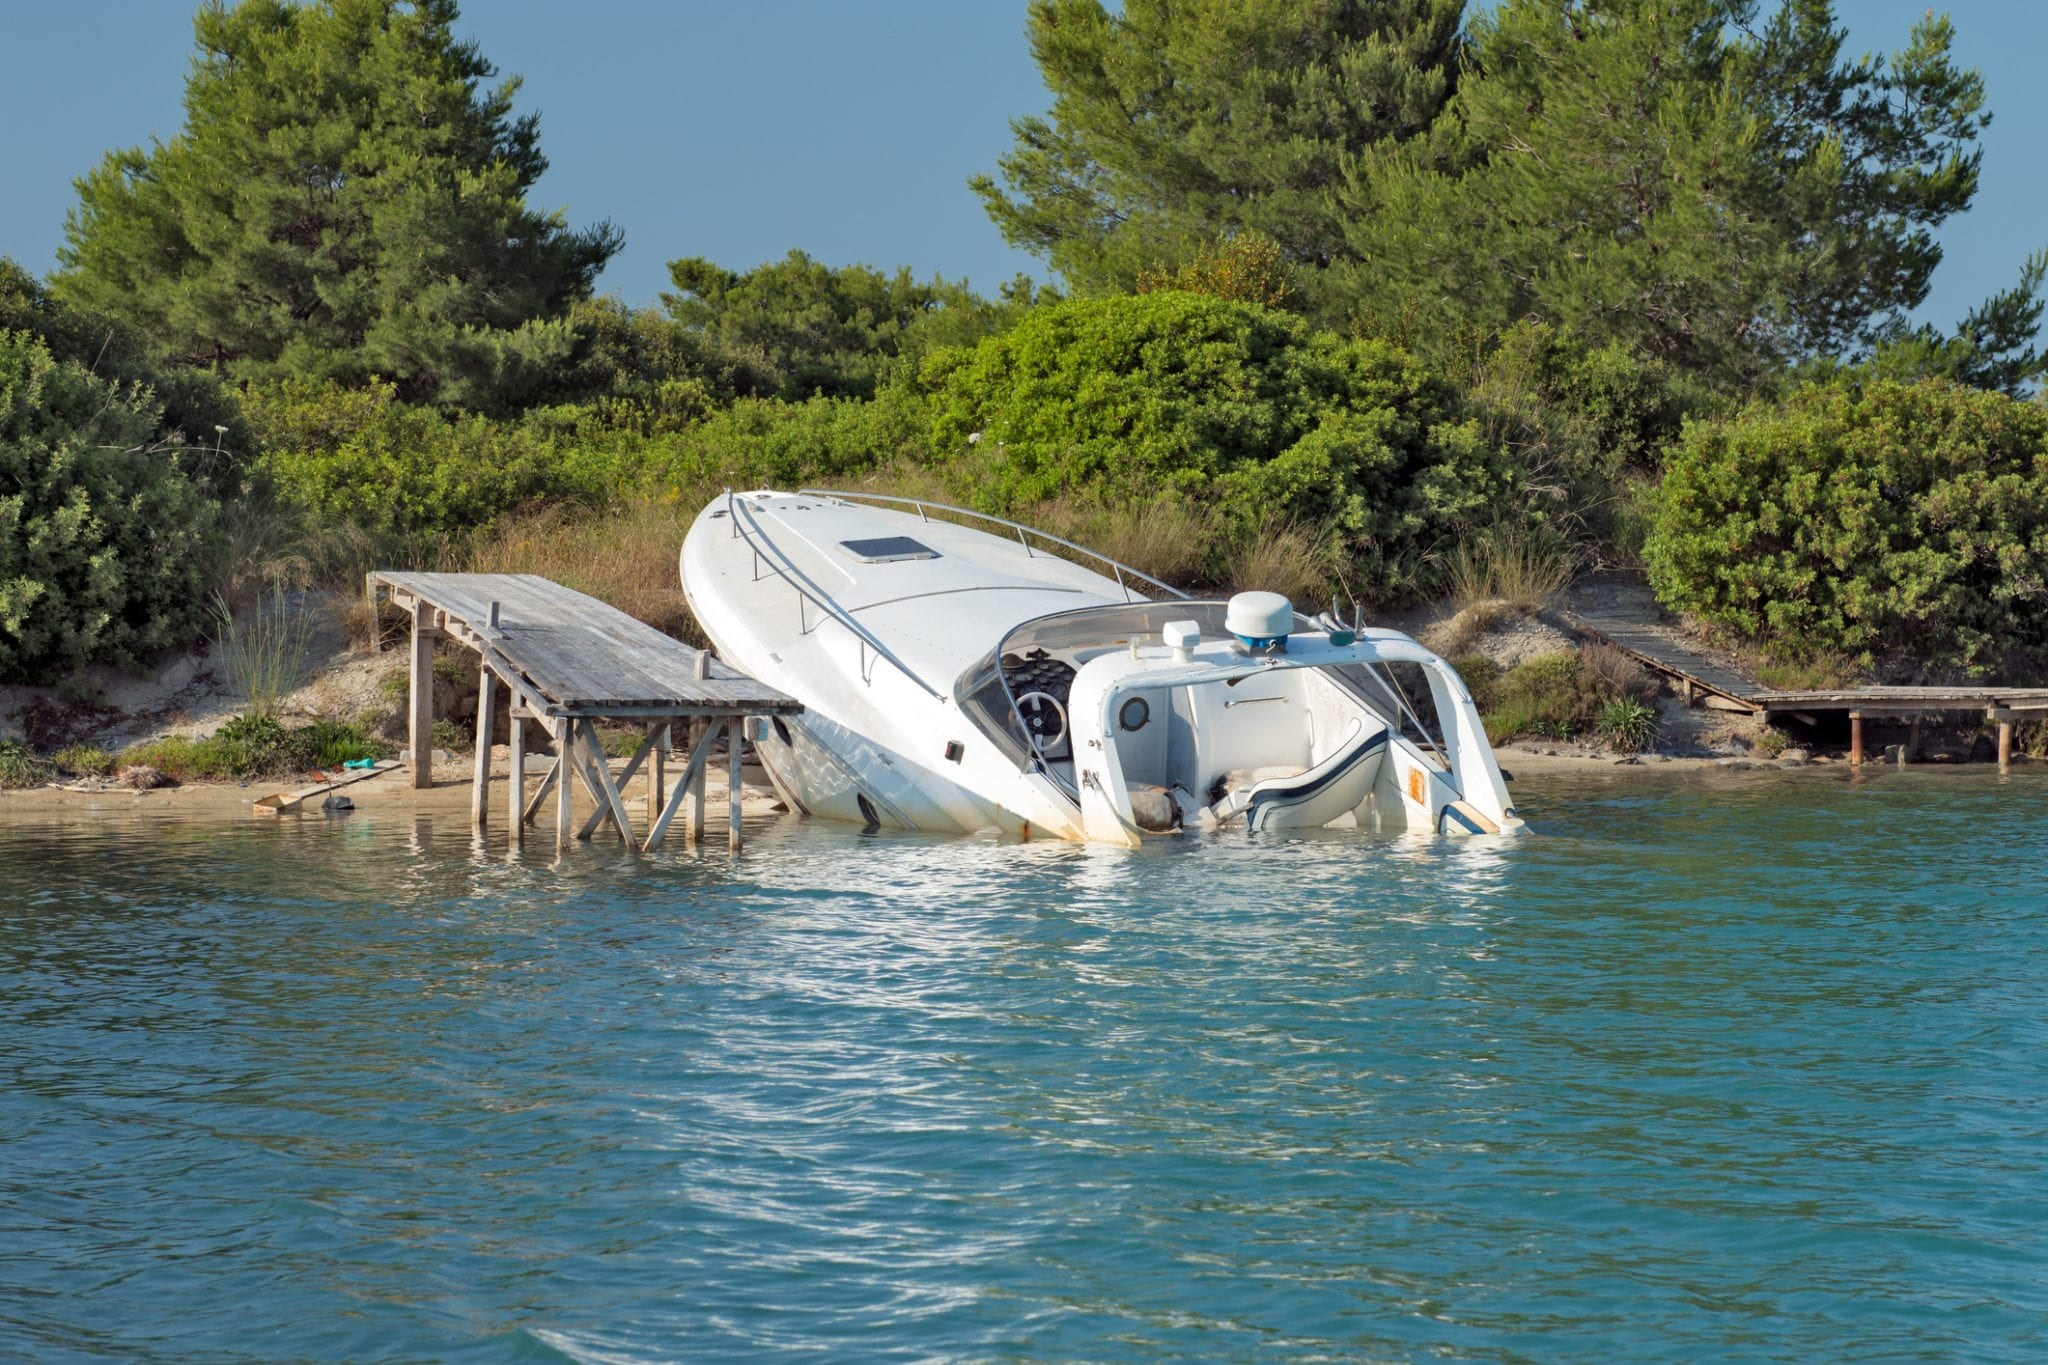 Liability Insurance for Boats